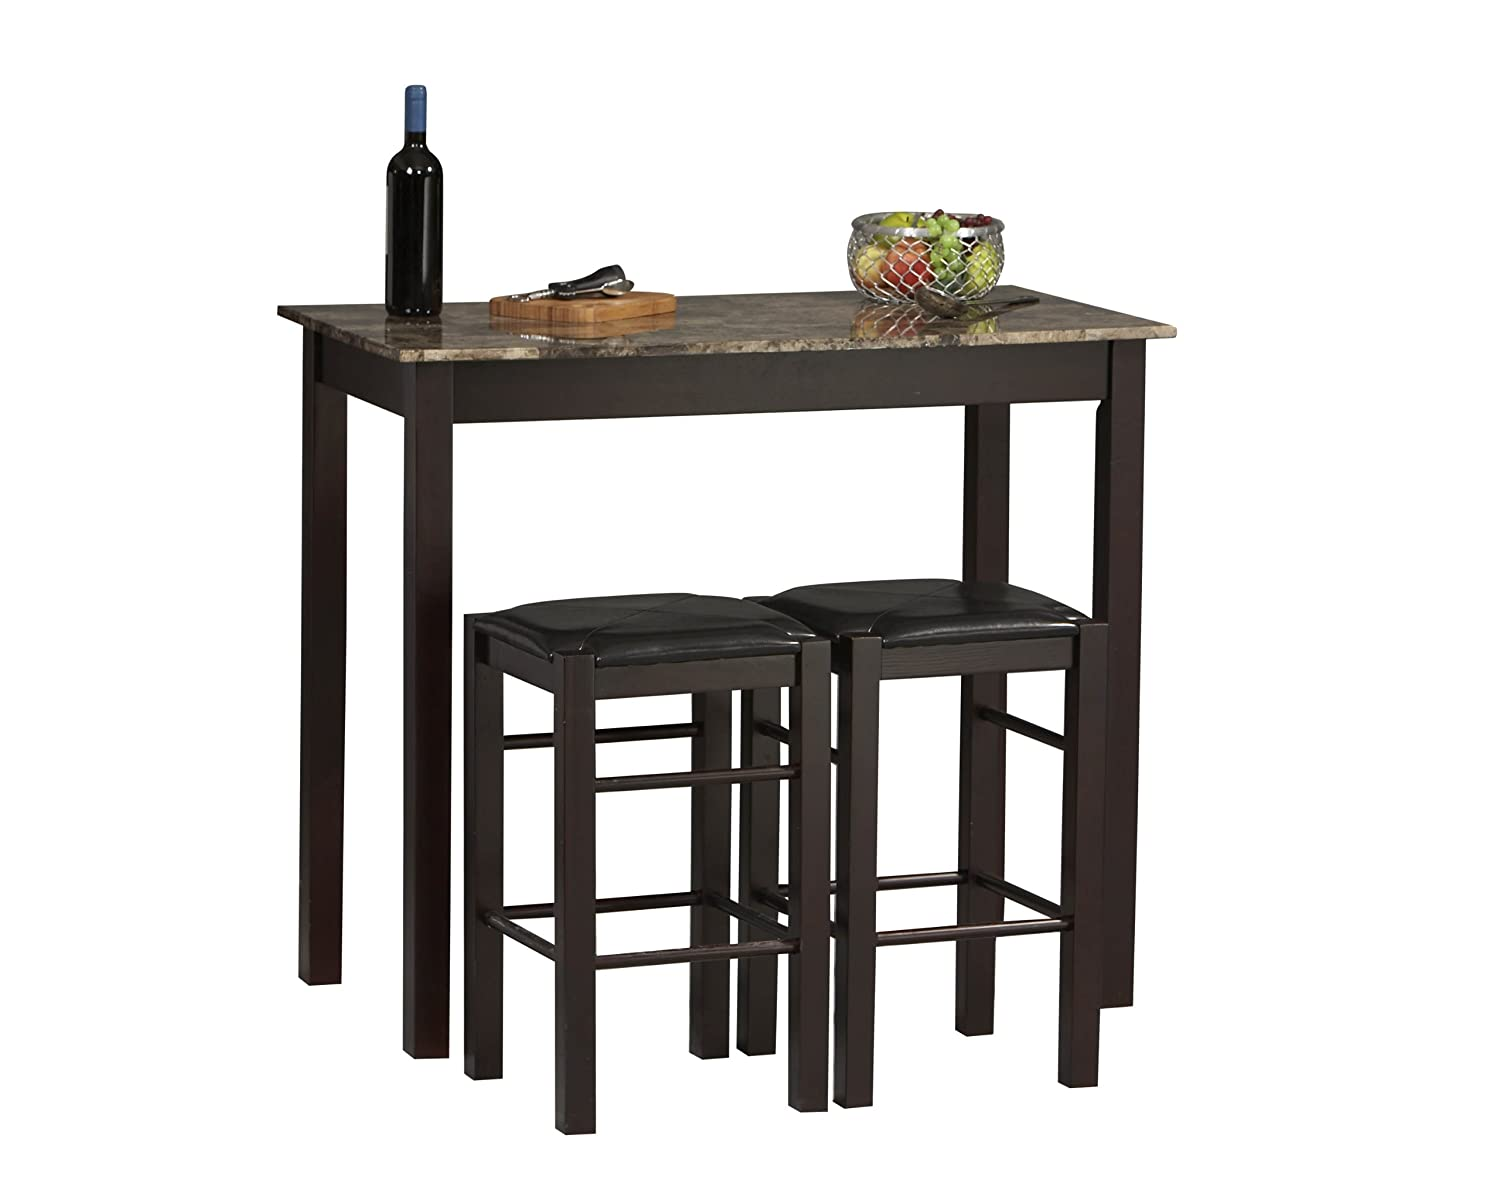 amazoncom linon tavern collection 3 piece table set tables - Kitchen Table With Bar Stools